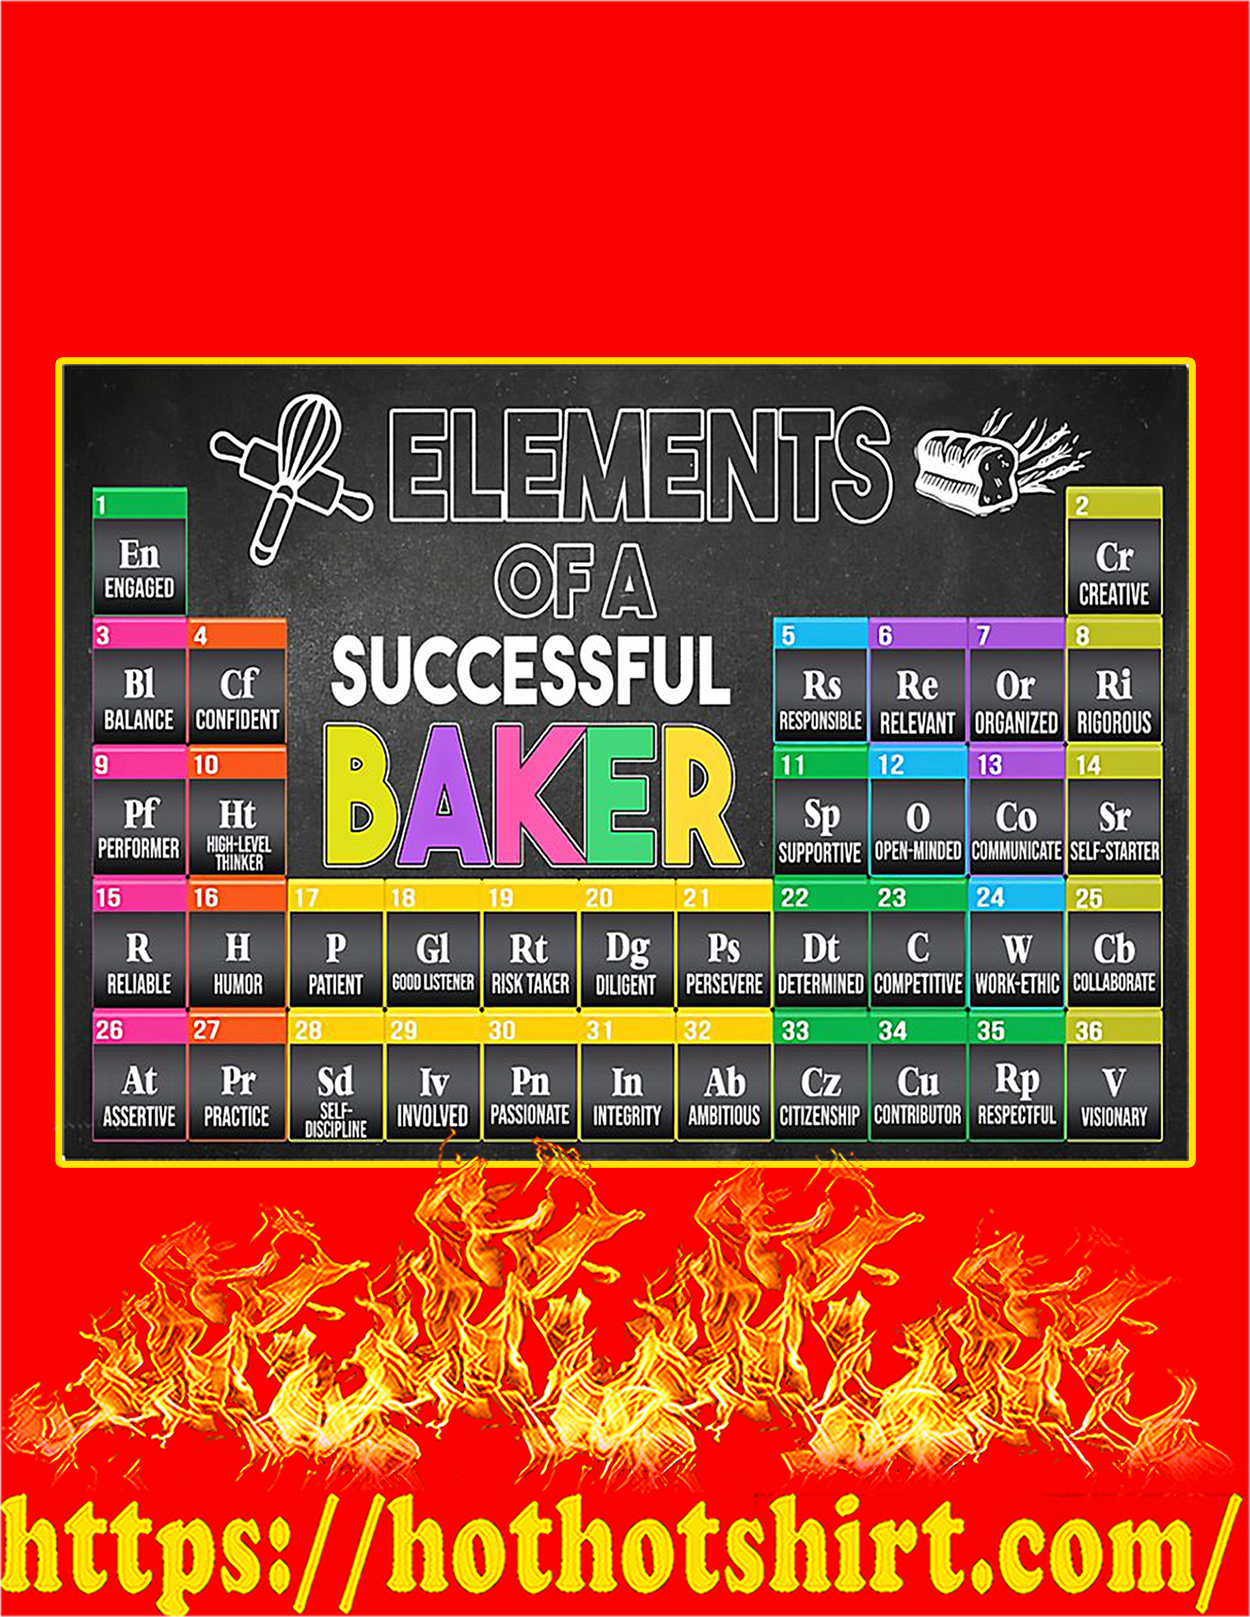 Elements of a successful baker poster - A4